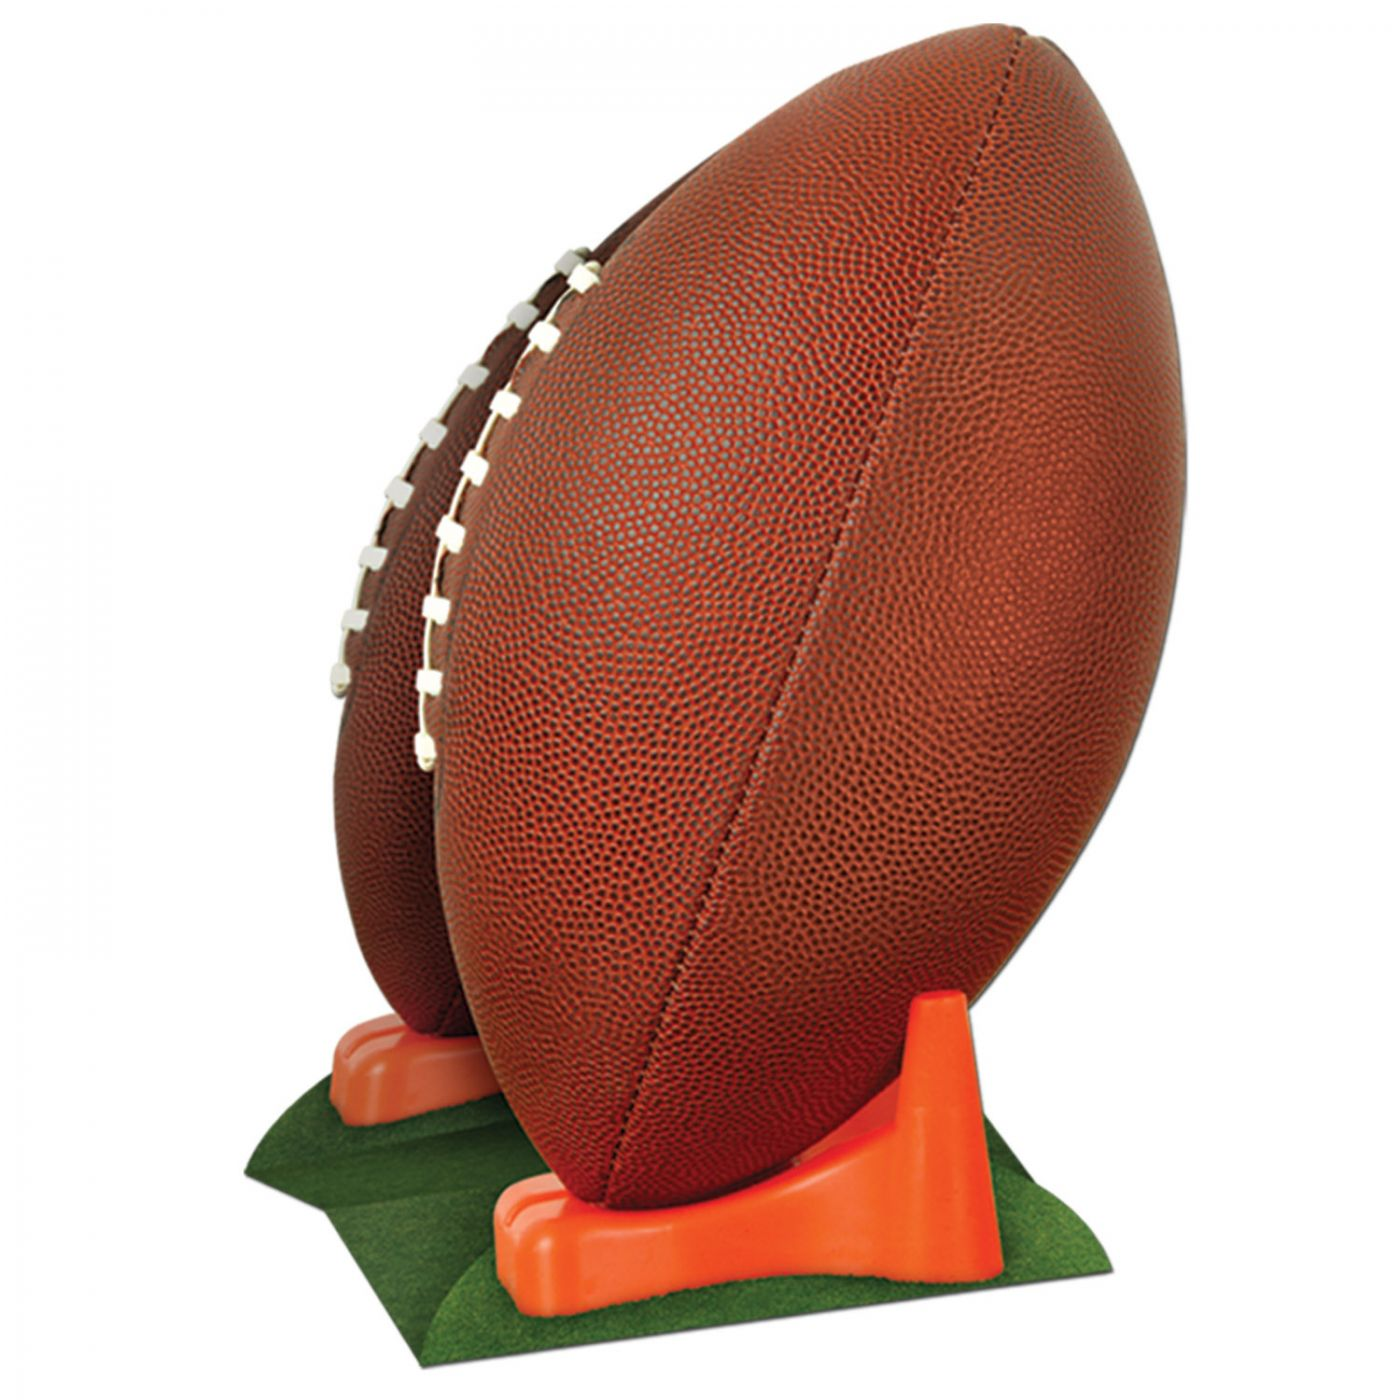 3-D Football Centerpiece image